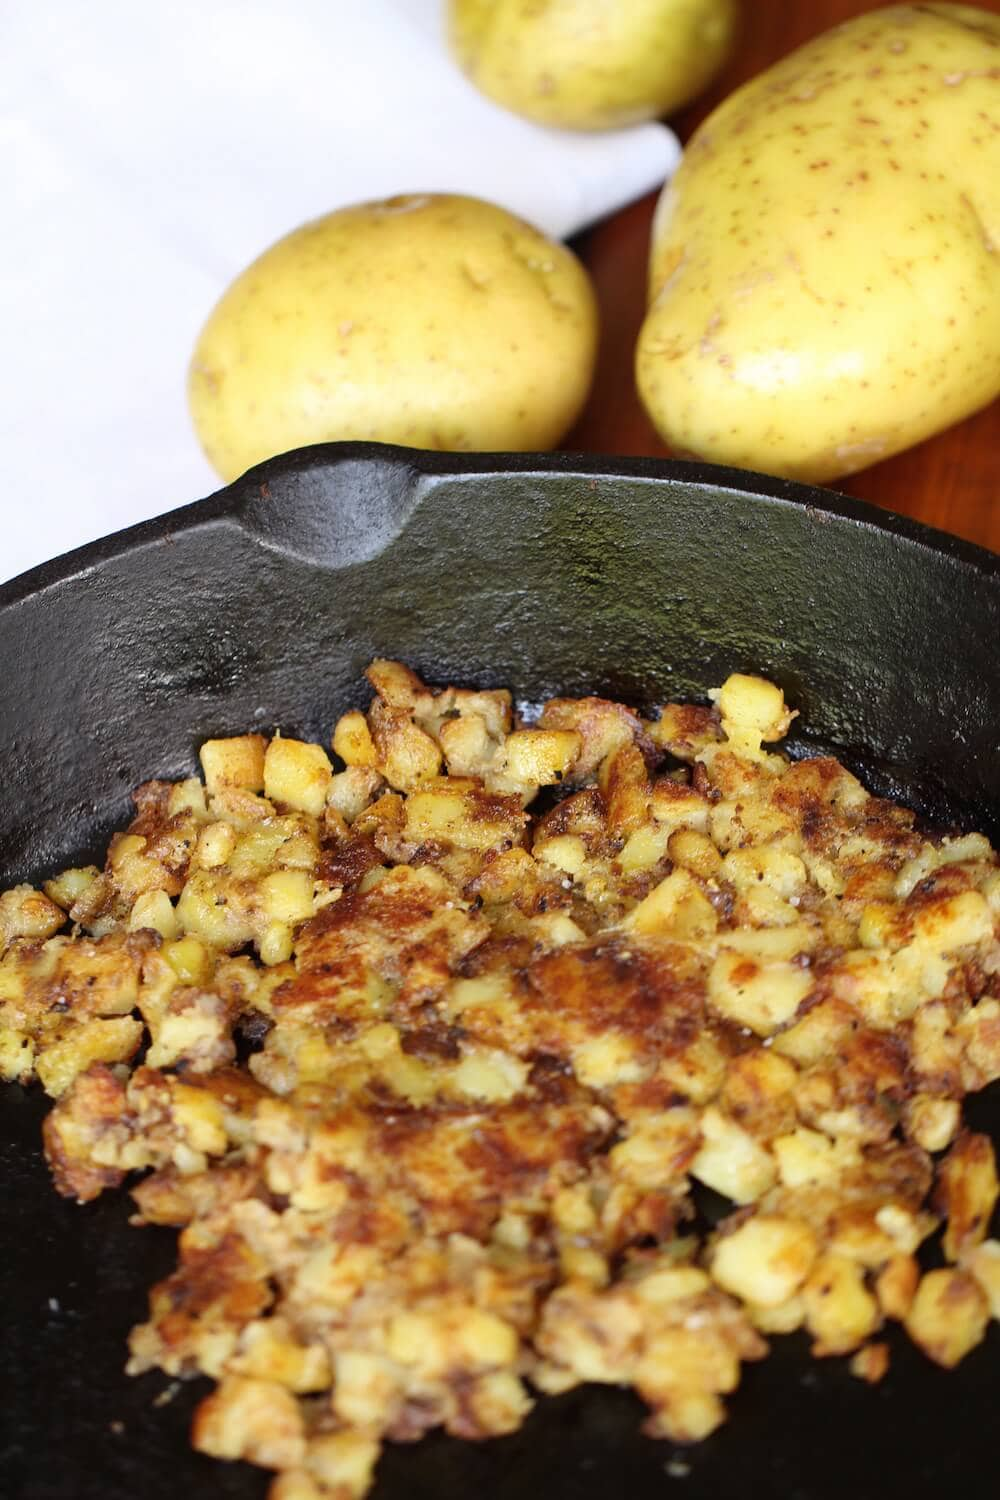 Crispy homemade hash brown breakfast dish, recipe by Stacy Lyn Harris